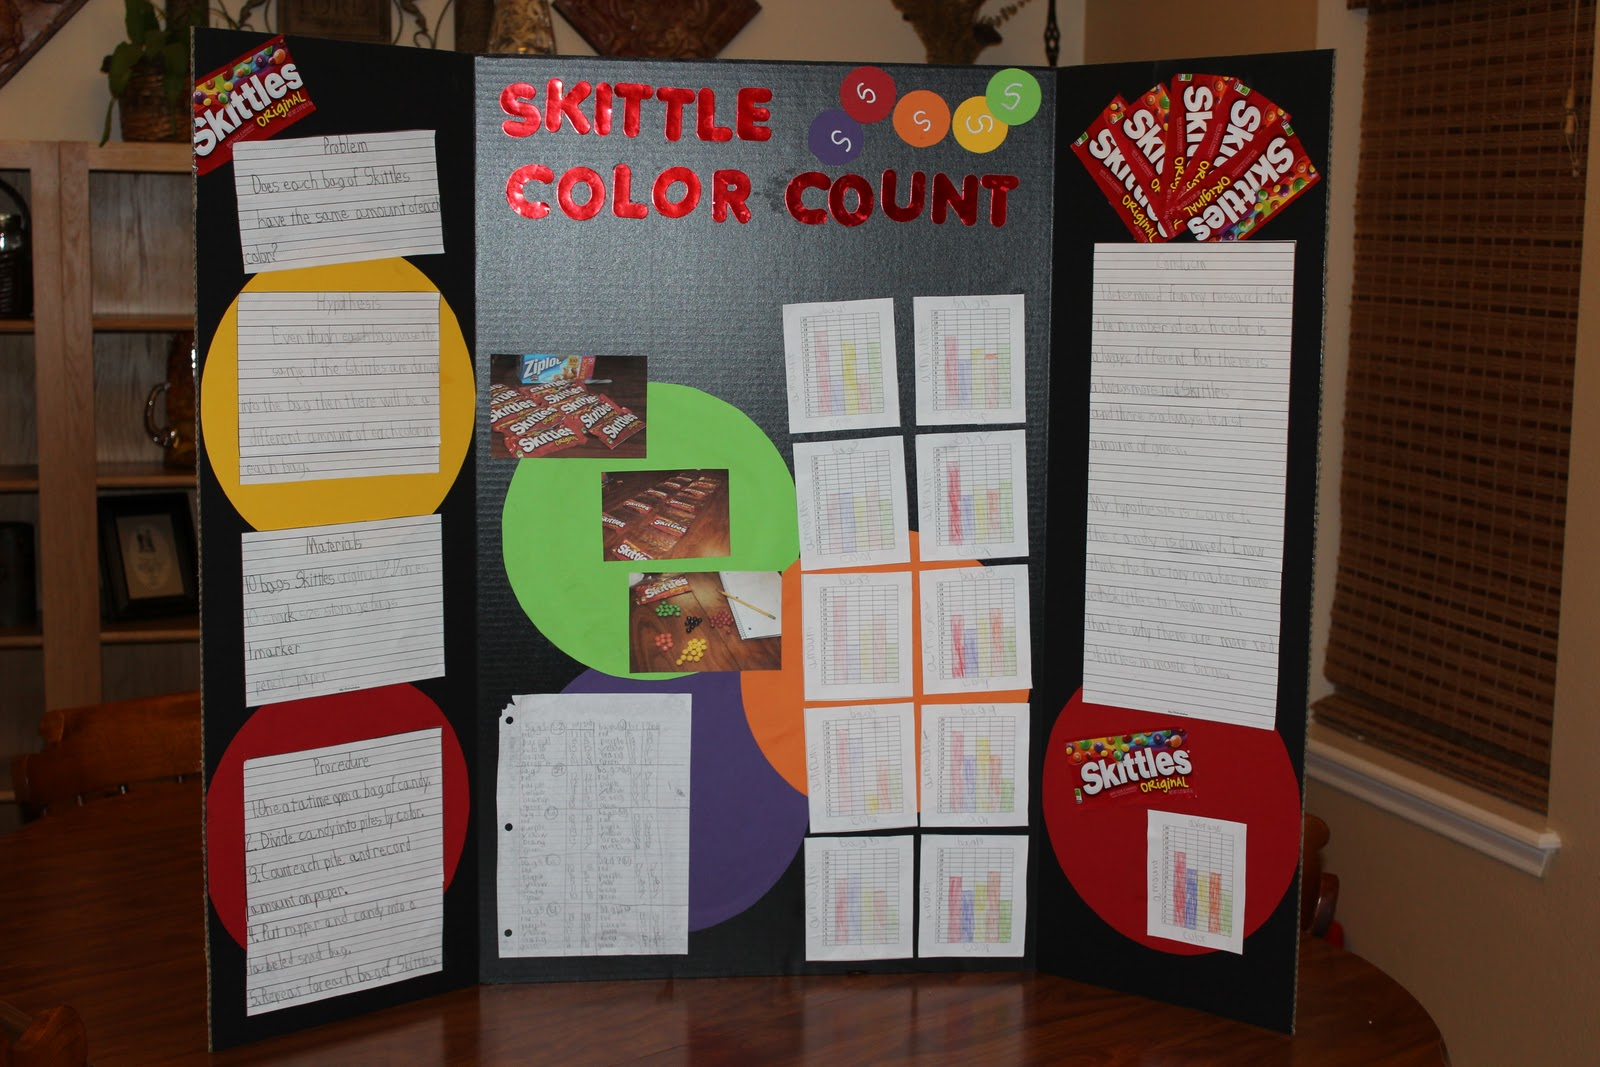 Skittles Science Projects http://cupofdaisies.blogspot.com/2011/11/science-fair-project-skittle-color.html